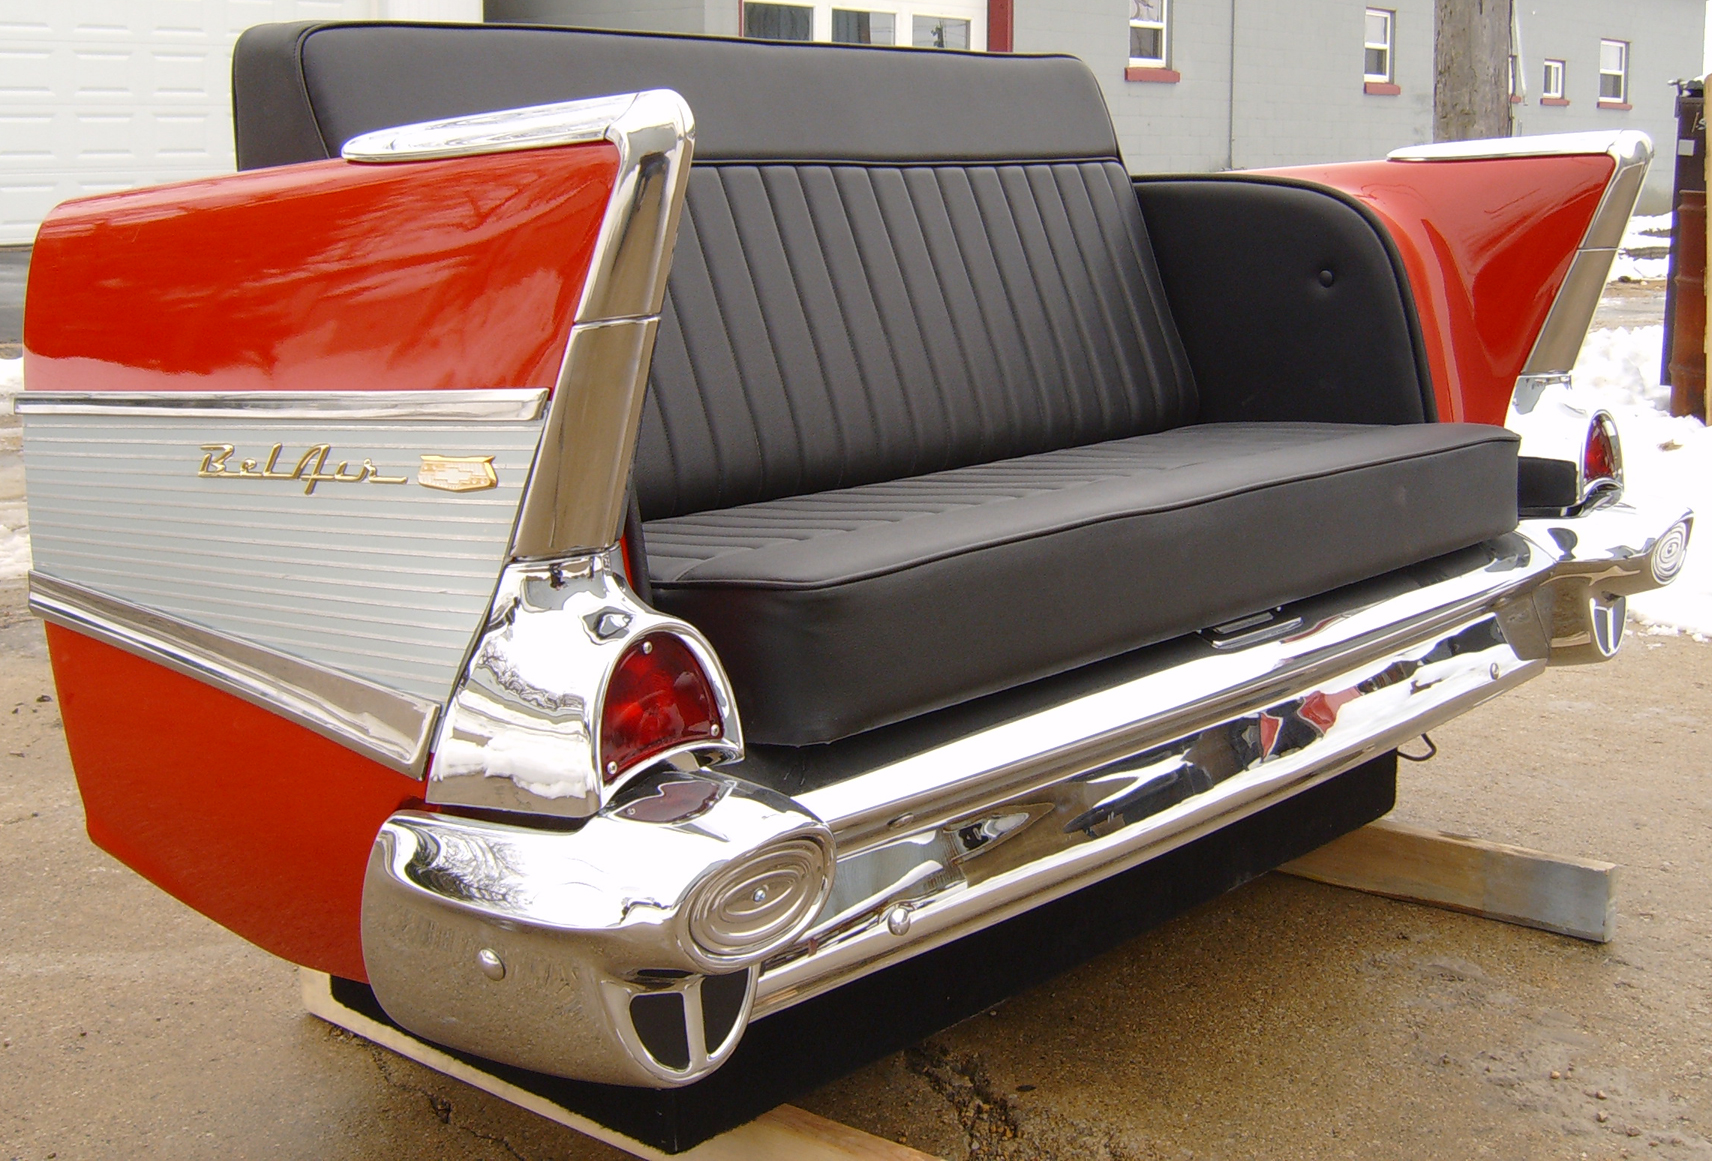 new retro cars : restored classic car furniture and decor